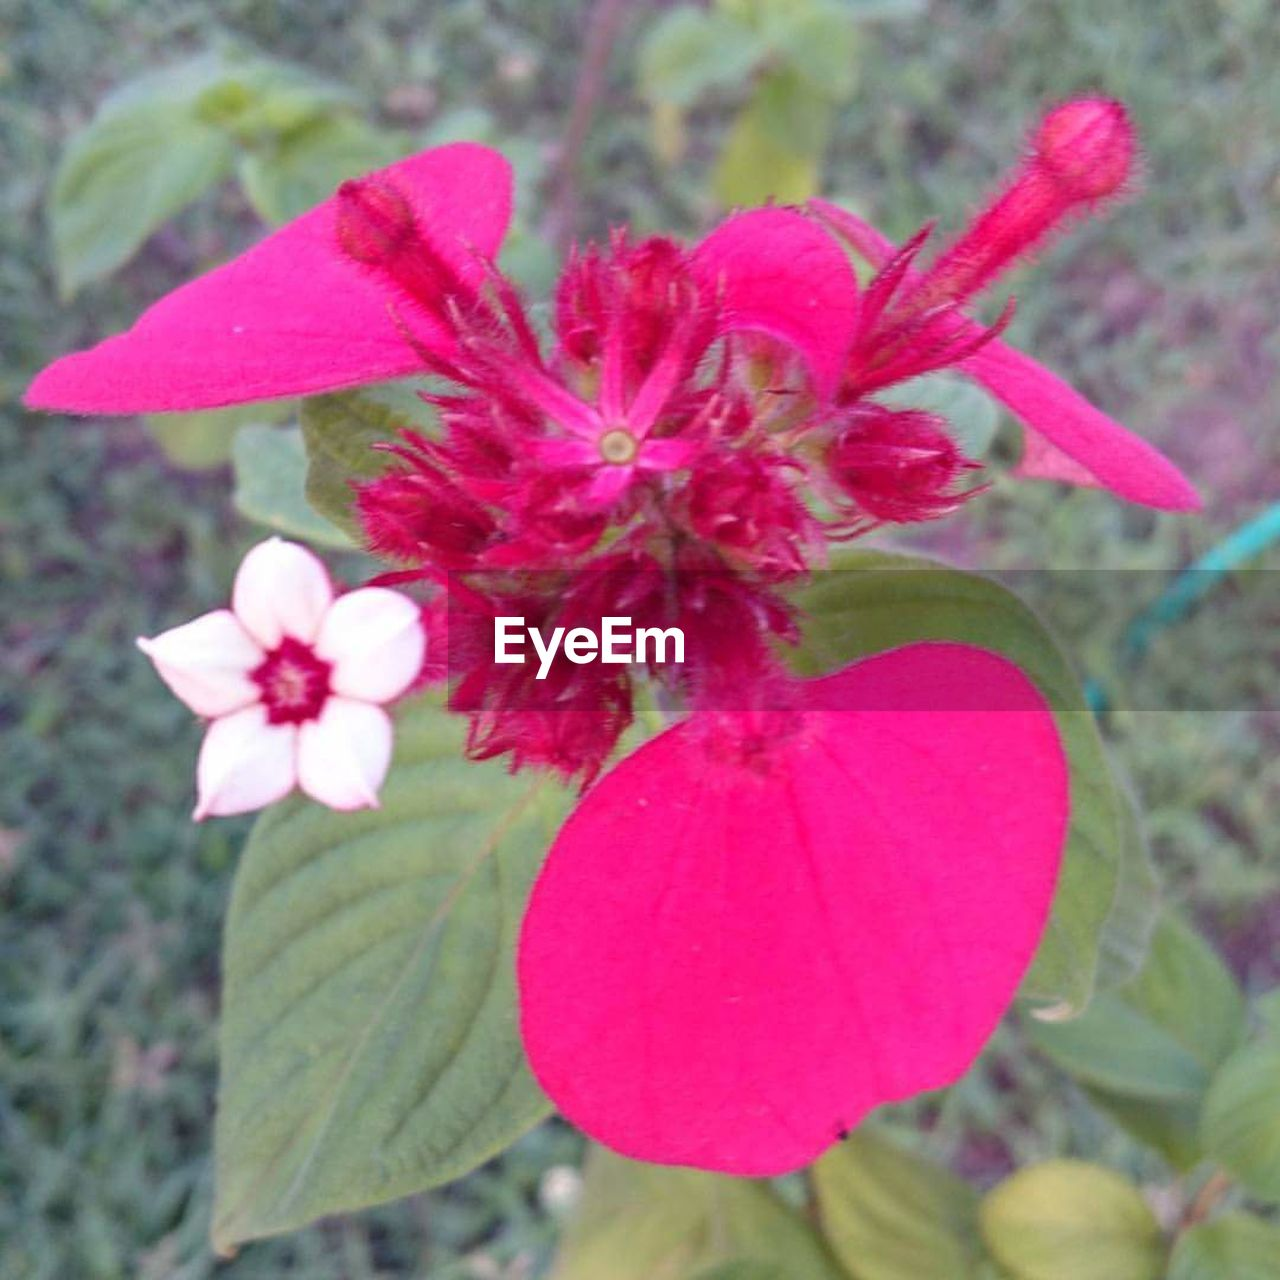 flower, pink color, petal, growth, fragility, leaf, beauty in nature, plant, nature, day, no people, close-up, freshness, flower head, outdoors, blooming, periwinkle